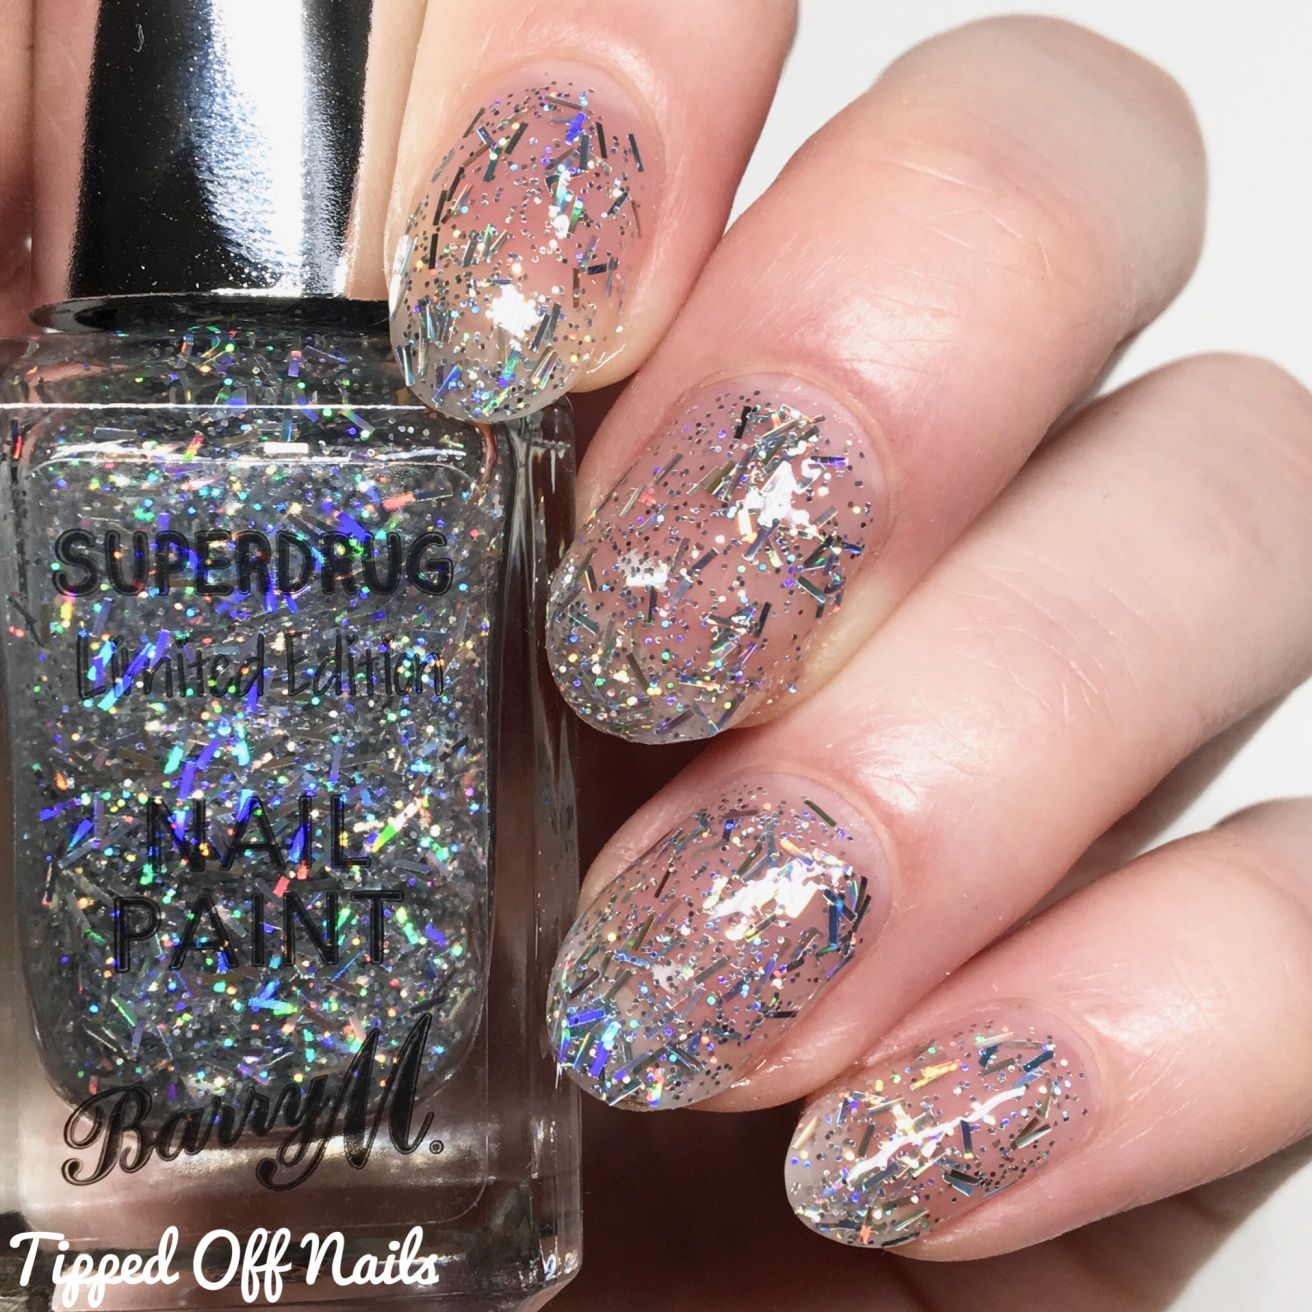 Barry M Superdrug Limited Edition Icicle Barry M Nails Lip Lacquer Superdrug